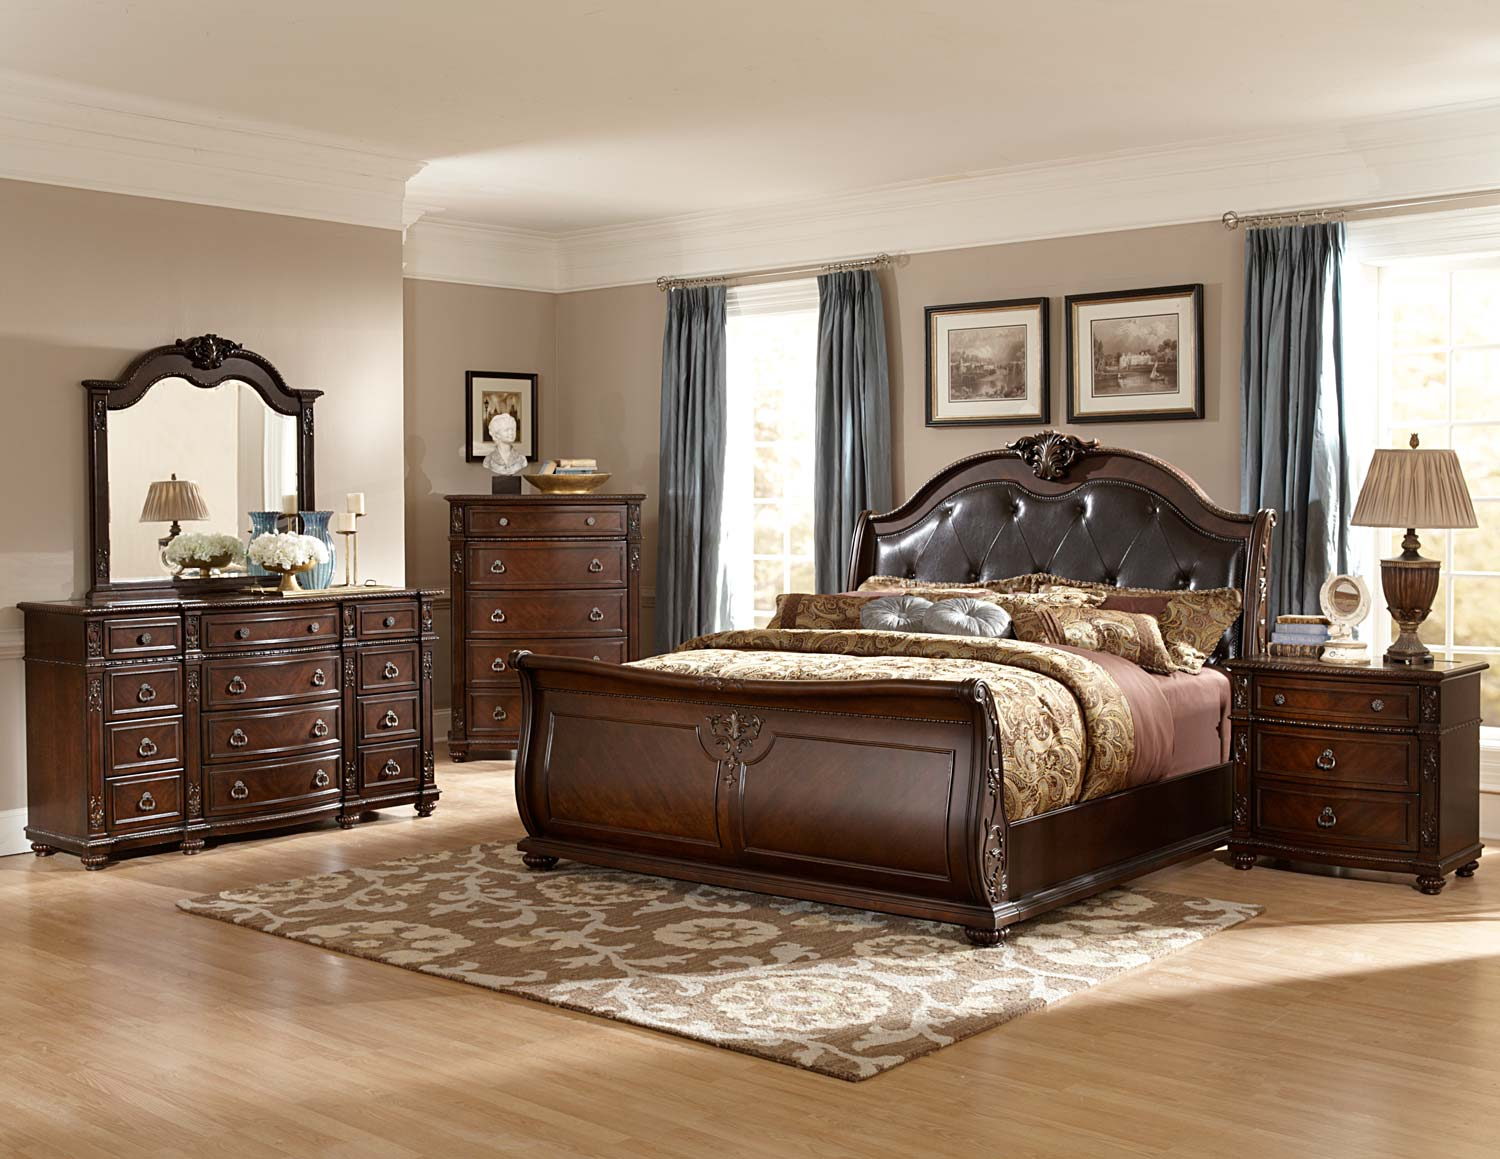 Homelegance Hillcrest Manor Sleigh Bedroom Set